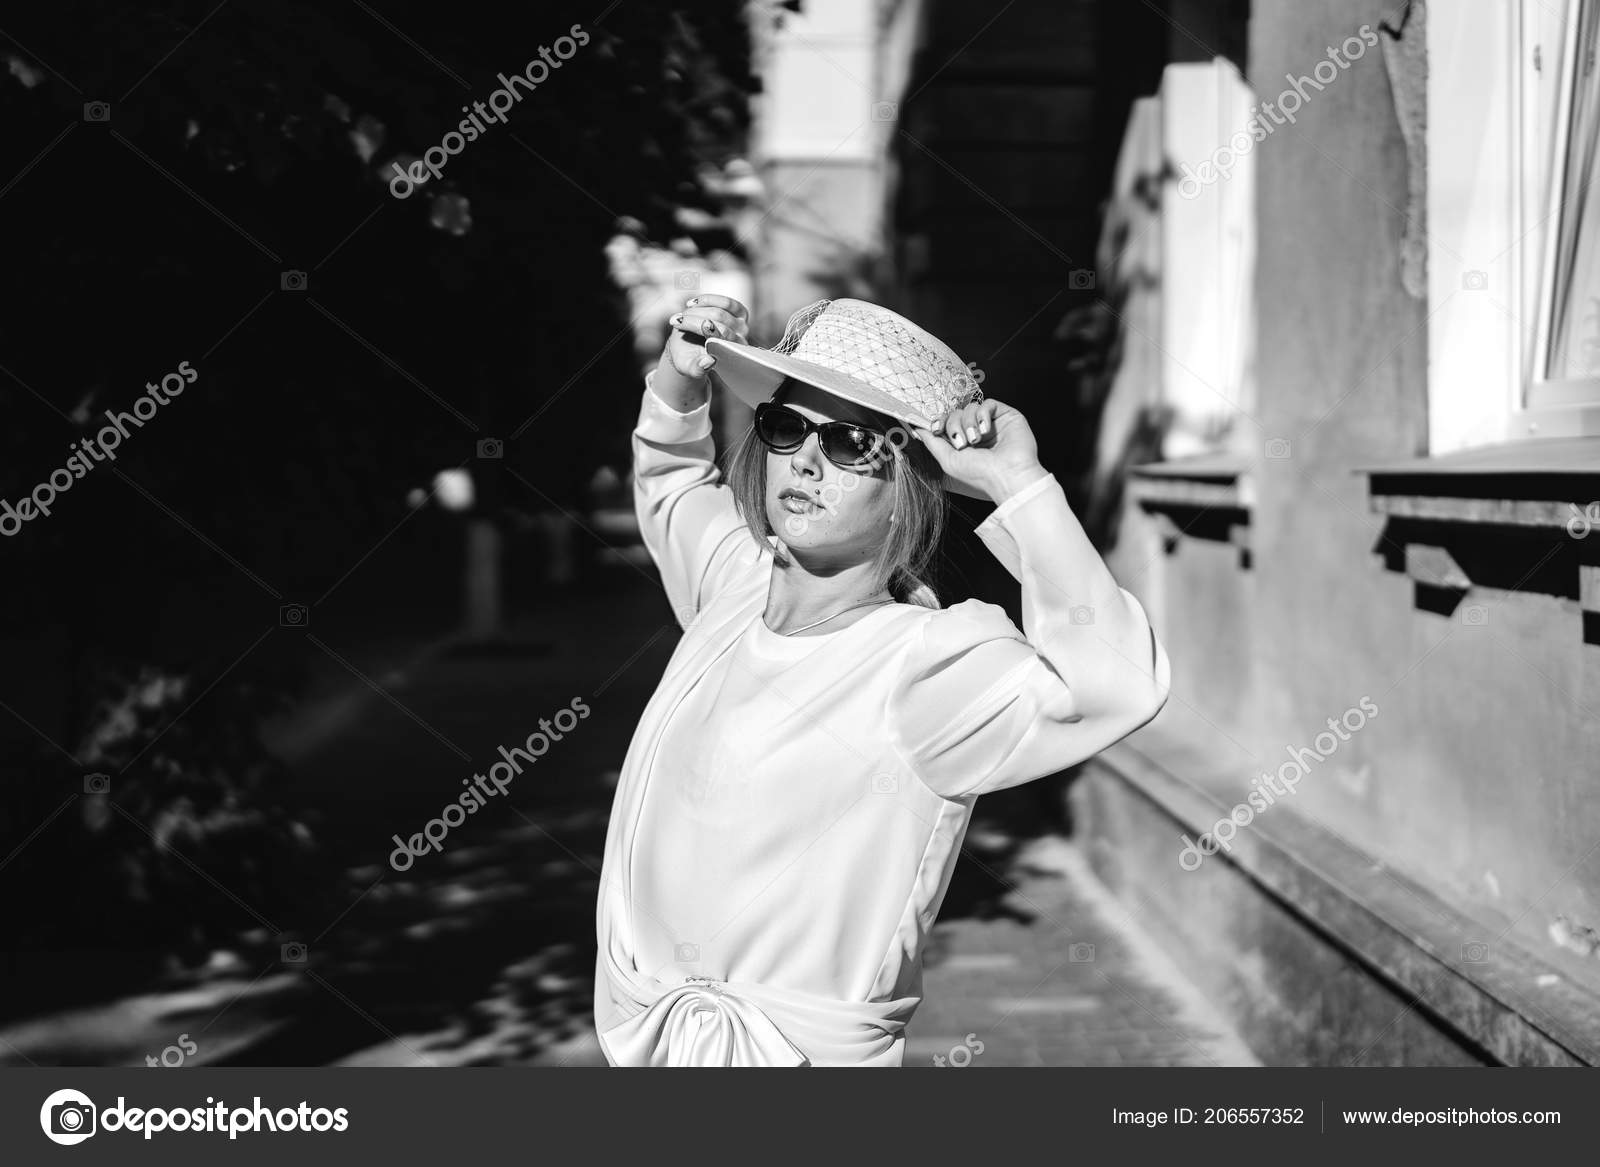 Black and white view of pretty woman in white vintage dress hat and sunglasses posing on street photo by